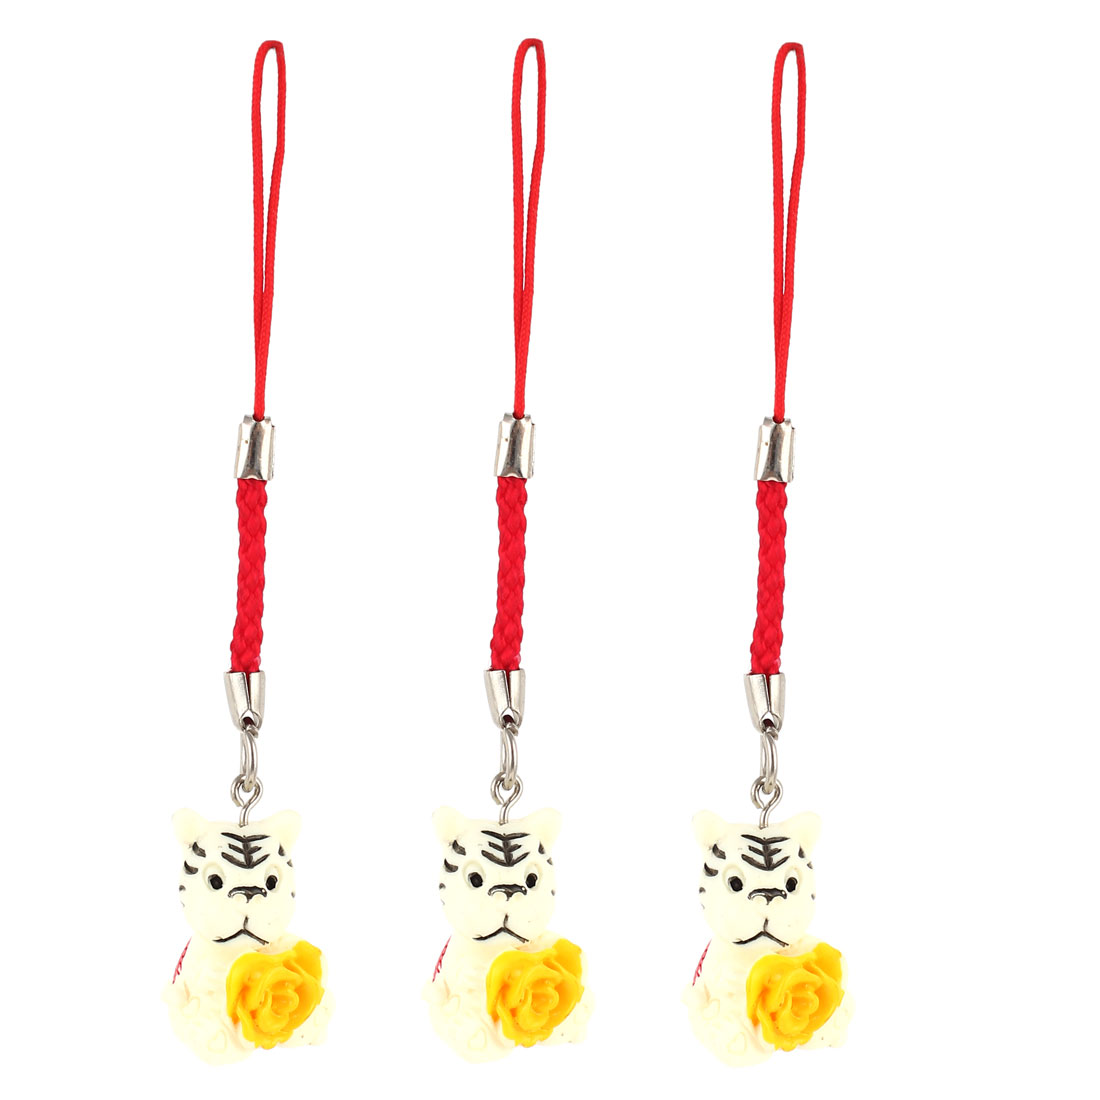 3 Pcs Flower Decor Tiger Pendant Phone Straps Hanging Beige for Girls